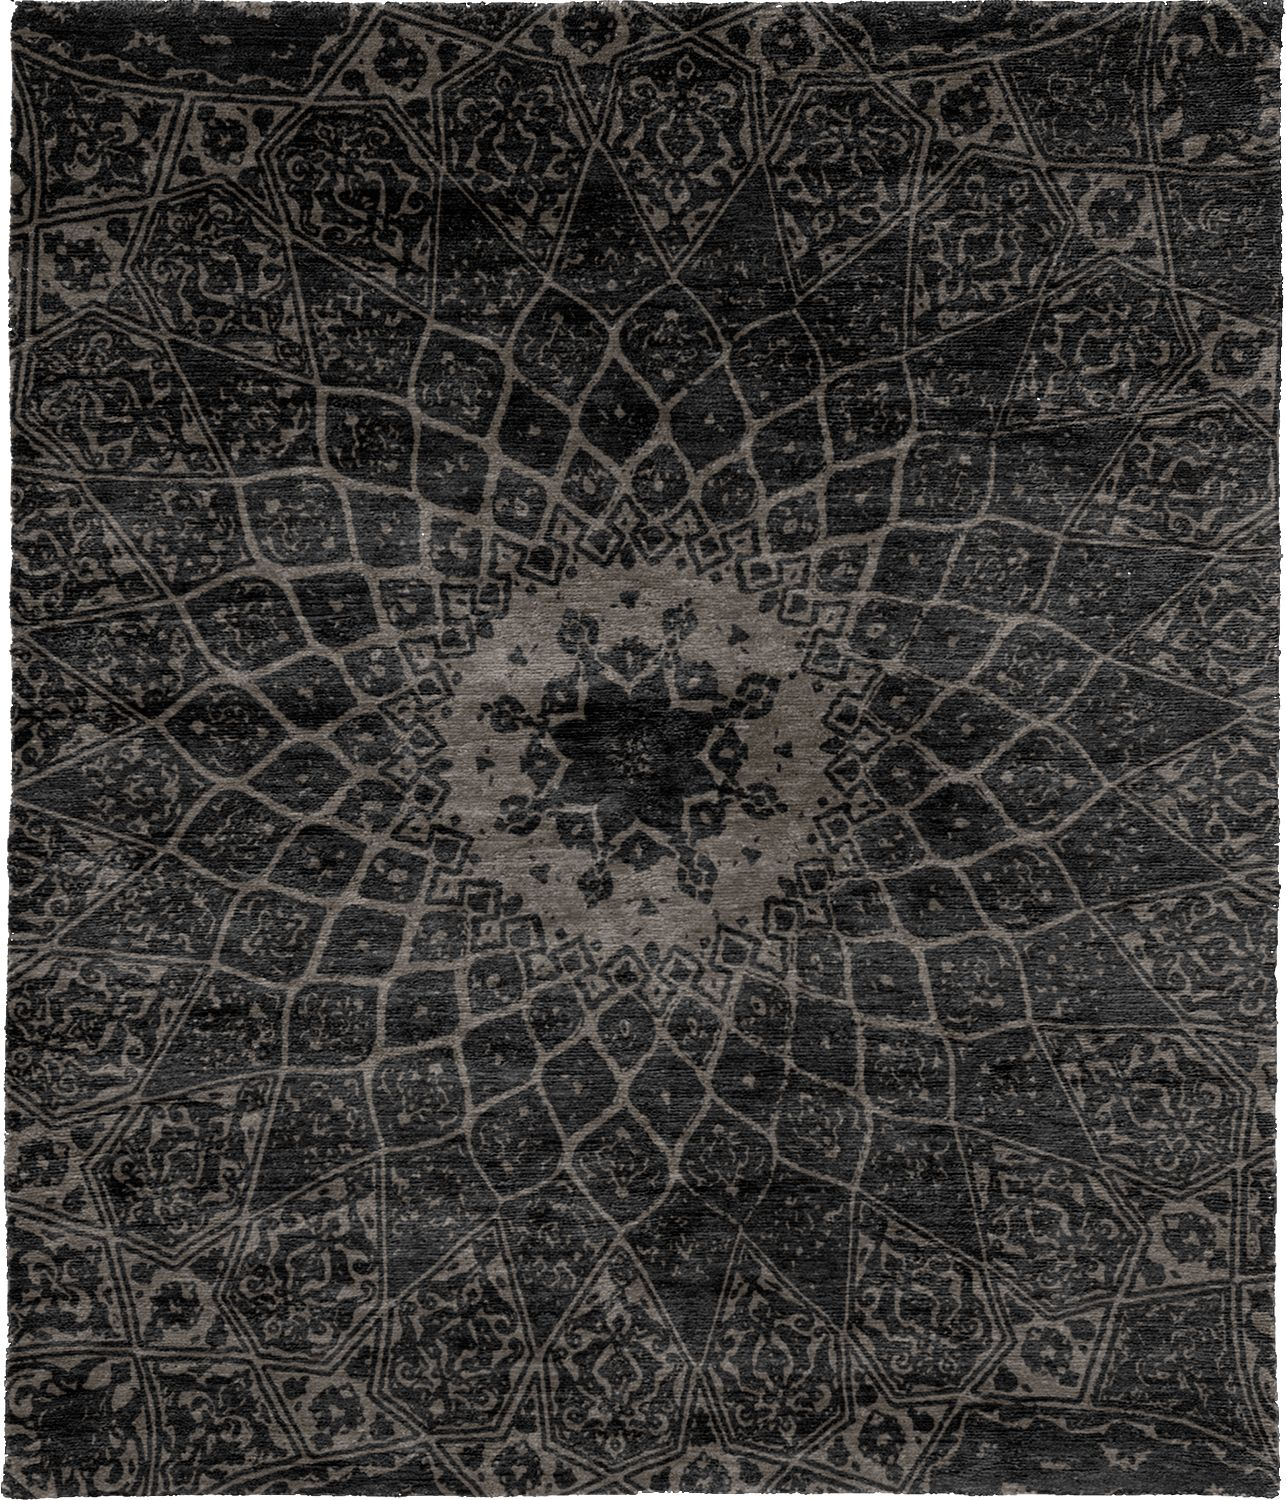 Gombad D Hand Knotted Tibetan Rug From The Christopher Fareed Designer Rugs Collection At Modern Area